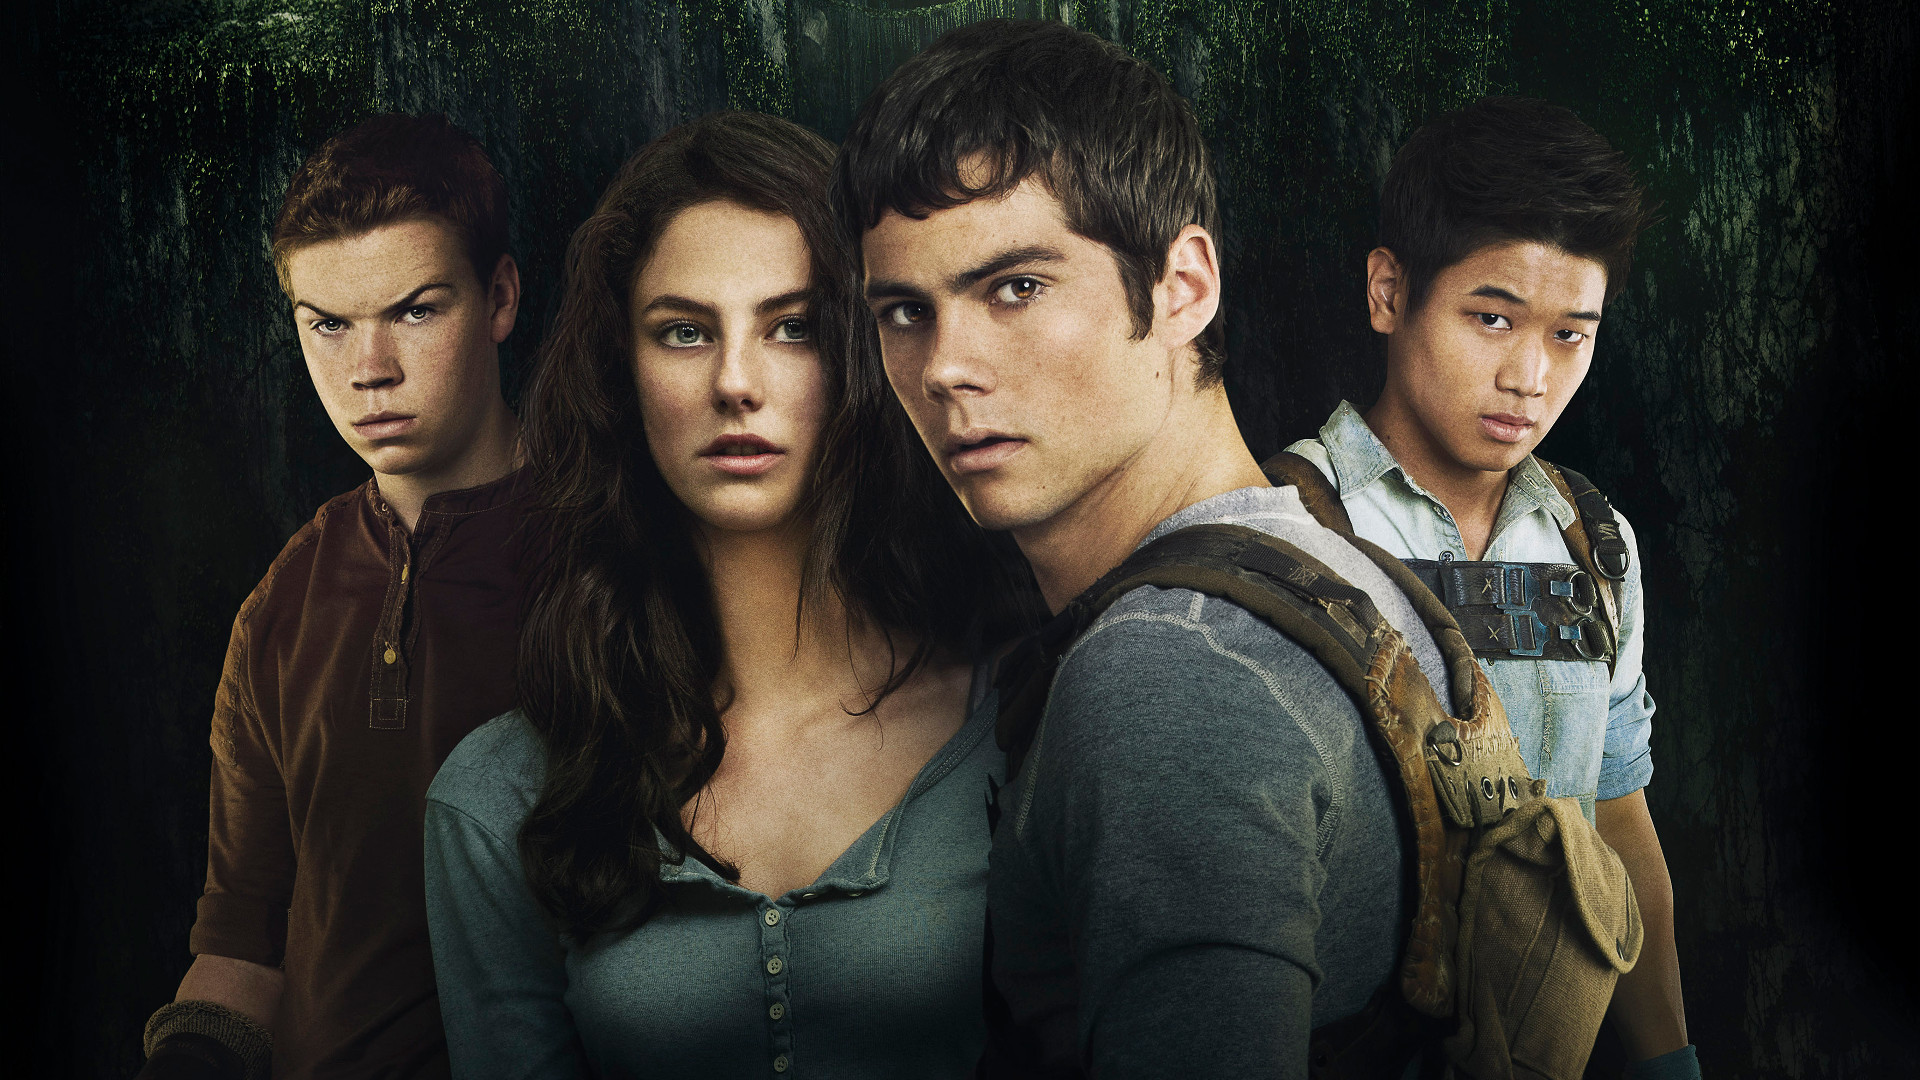 The Maze Runner Hd Wallpaper Background Image 1920x1080 Id